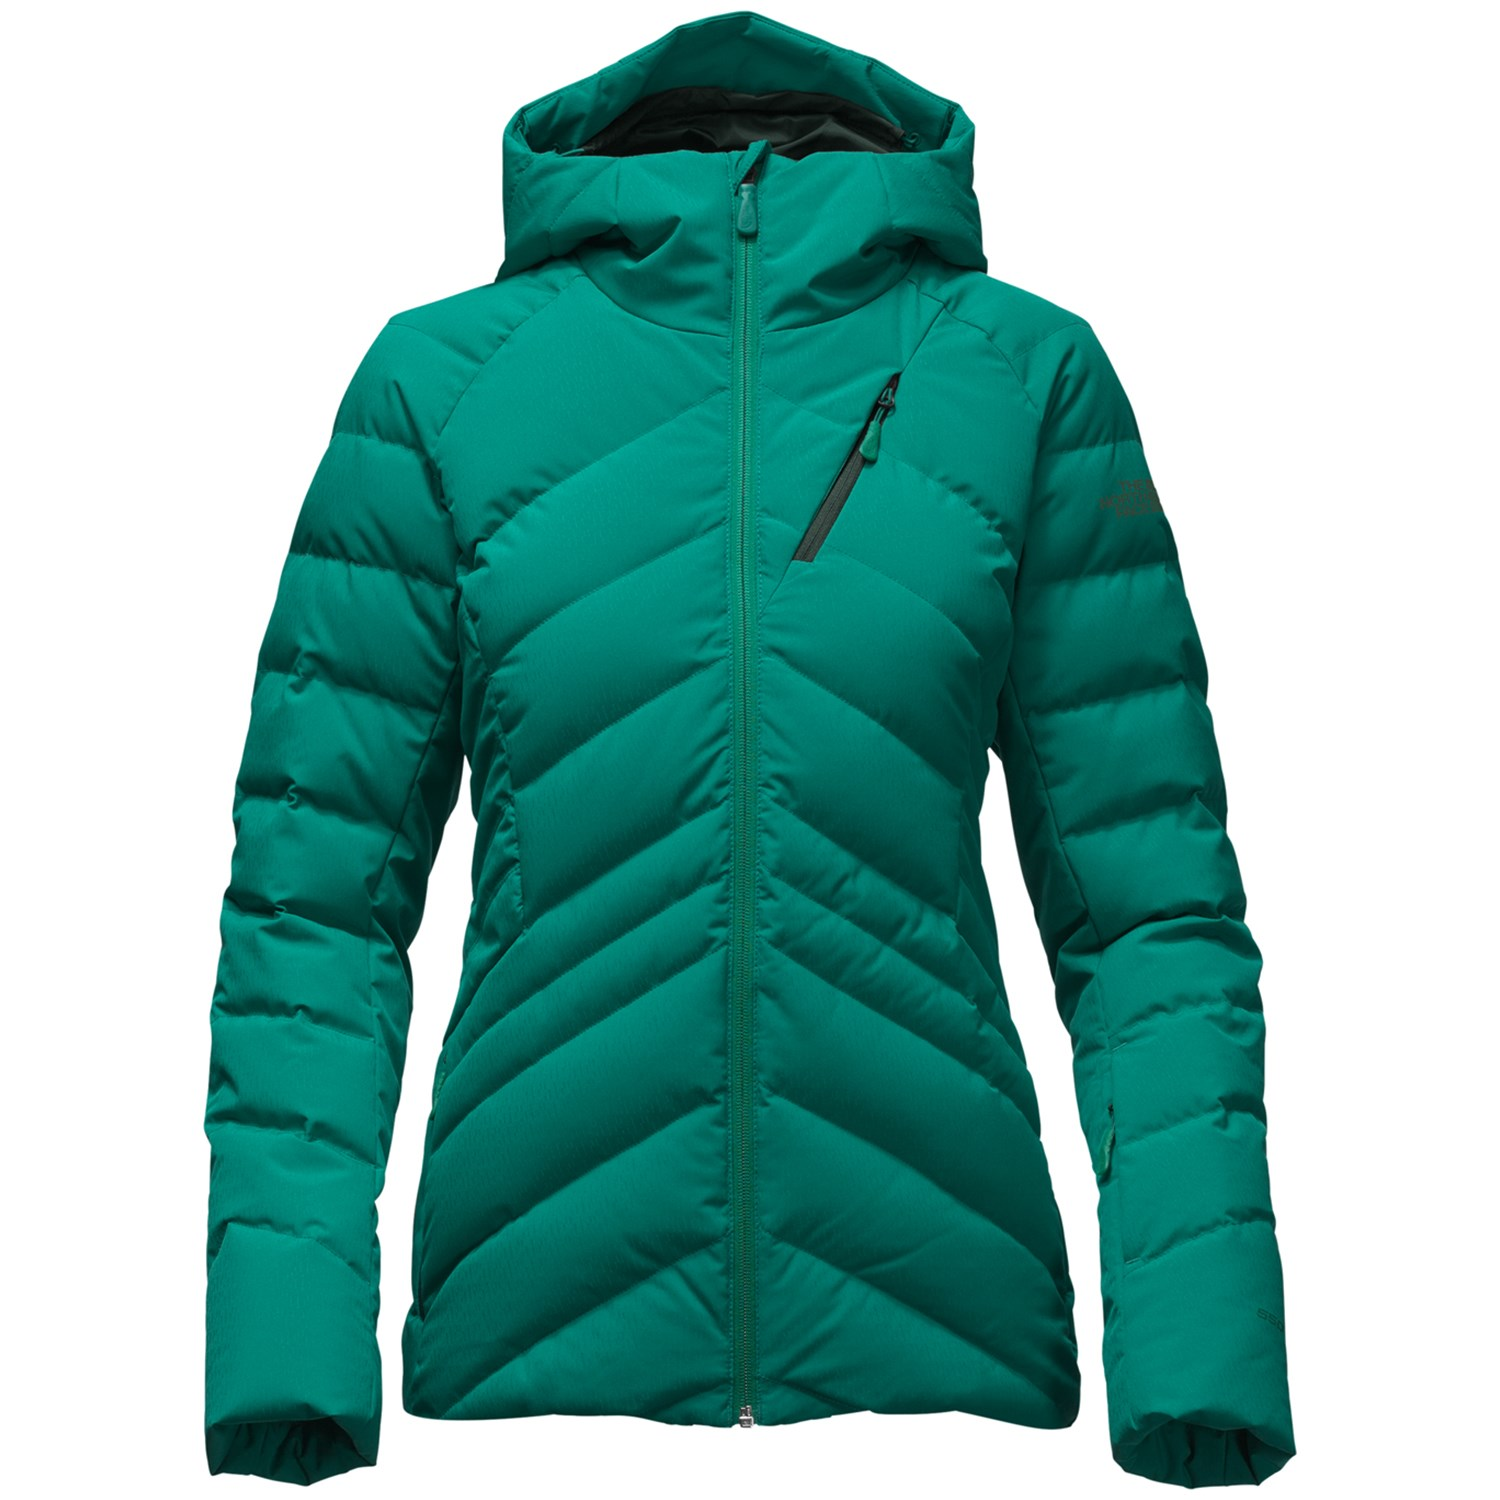 The north face womens jacket green